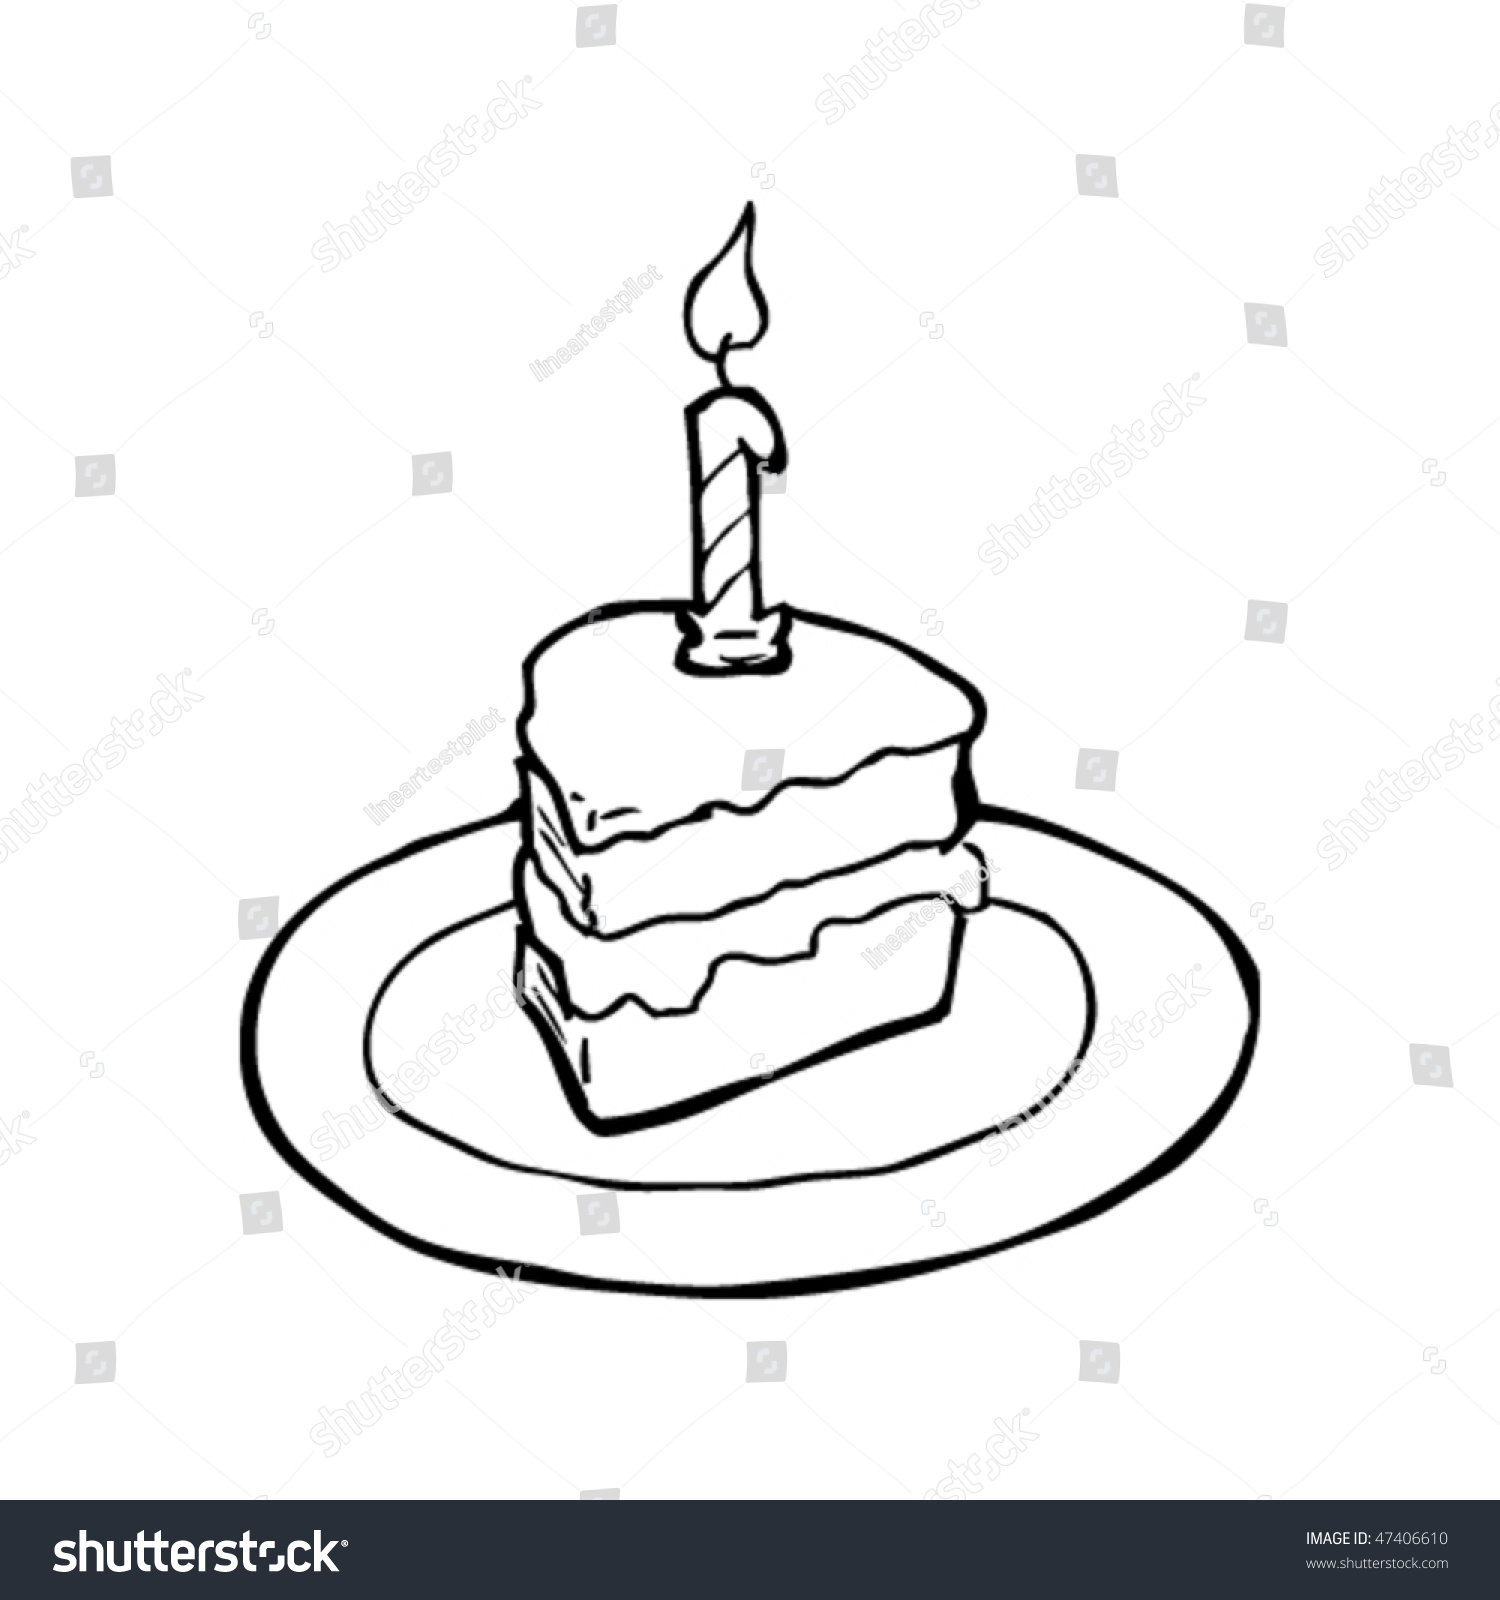 Drawing Slice Birthday Cake Stock Vector Royalty Free 47406610